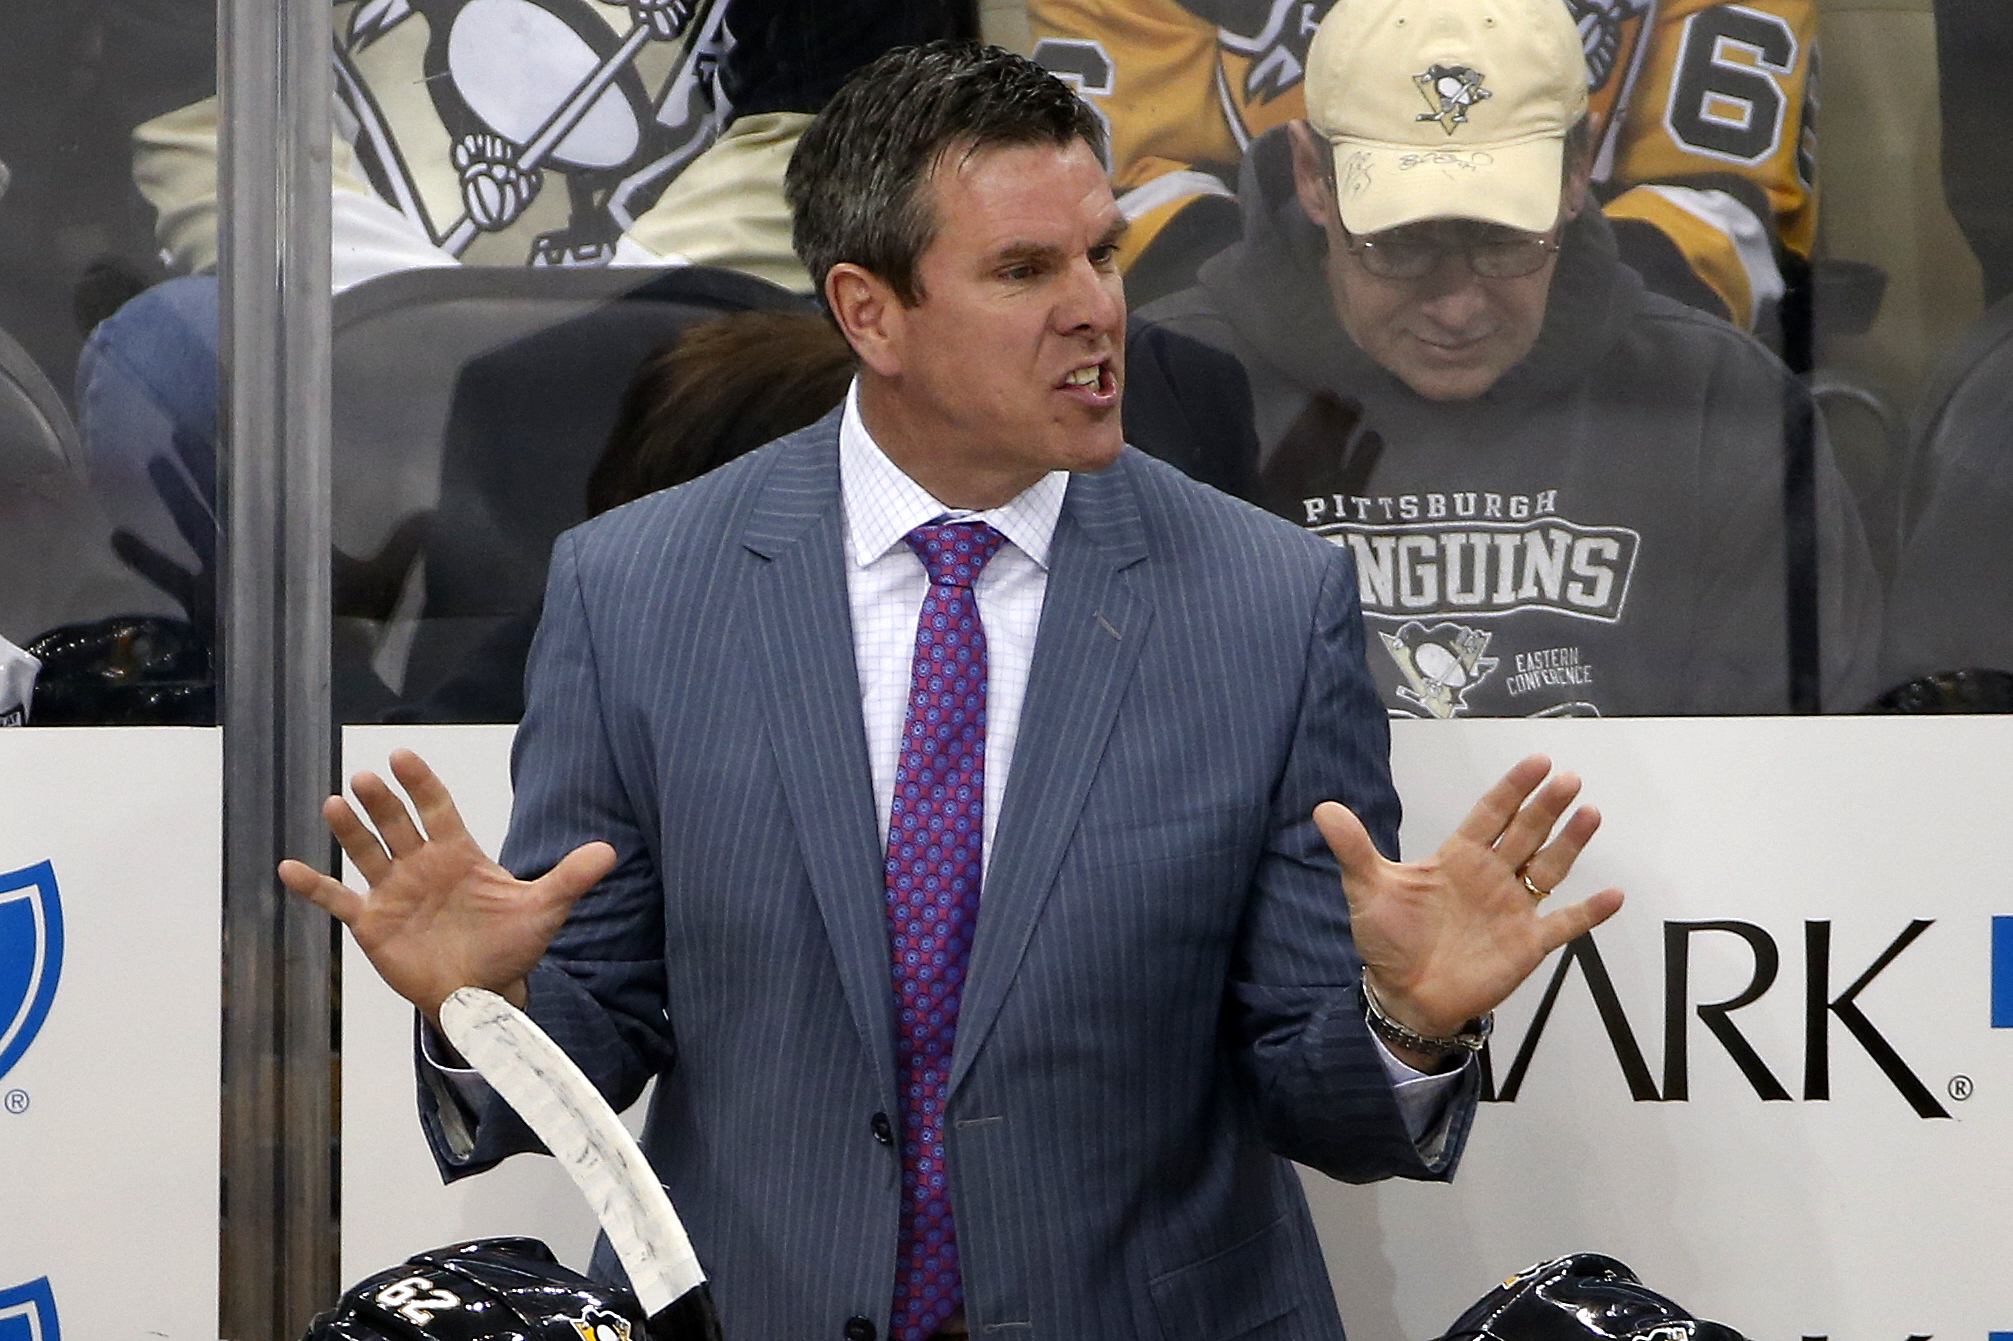 Pittsburgh Penguins head coach Mike Sullivan talks with a linesman during the first period of an NHL hockey game against the Winnipeg Jets in Pittsburgh, Saturday, Feb. 27, 2016. The Penguins won 4-1. (AP Photo/Gene J. Puskar)